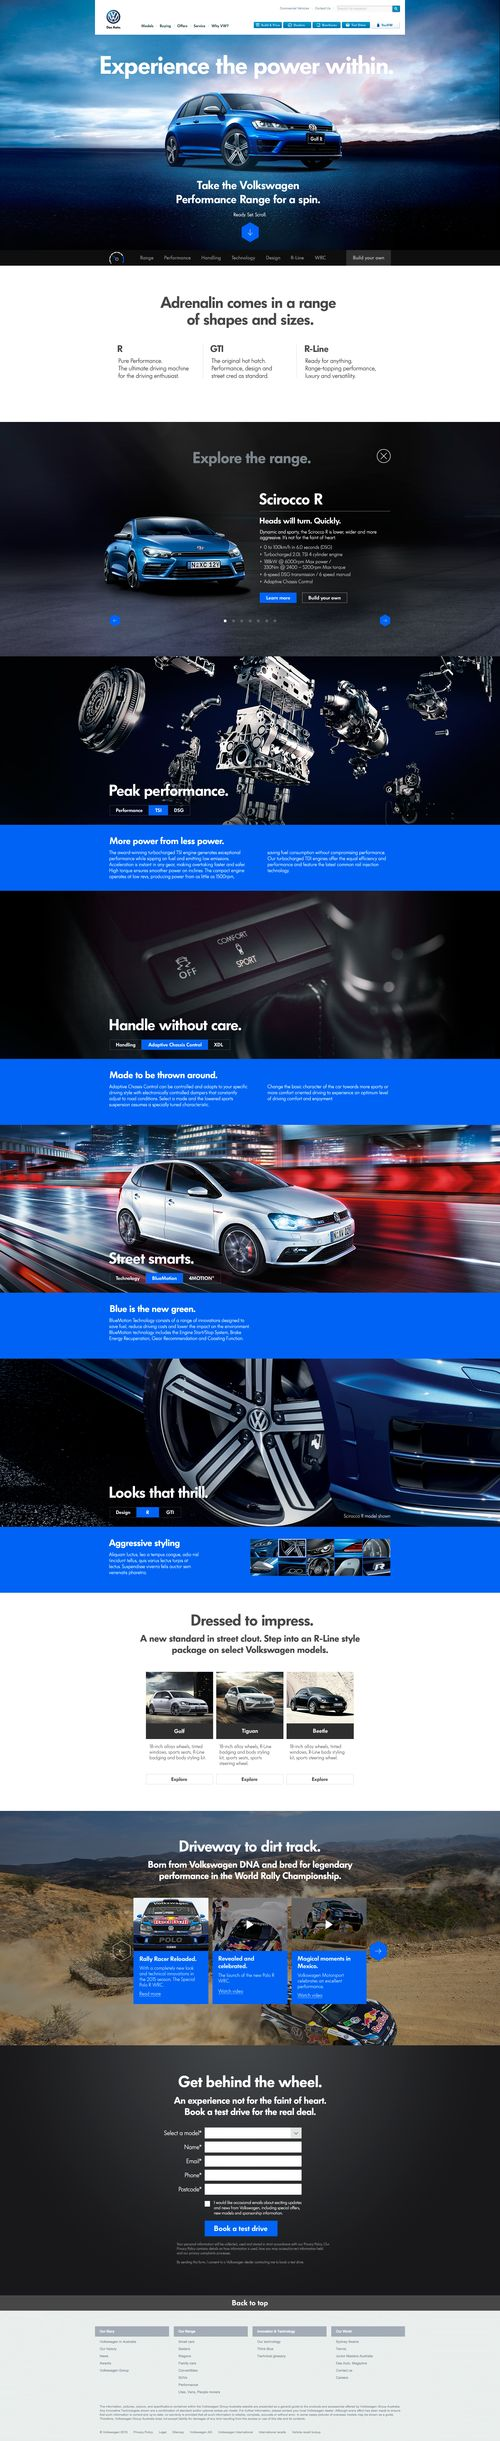 Volkswagen Performance - car / automotive website design by JONO YUEN